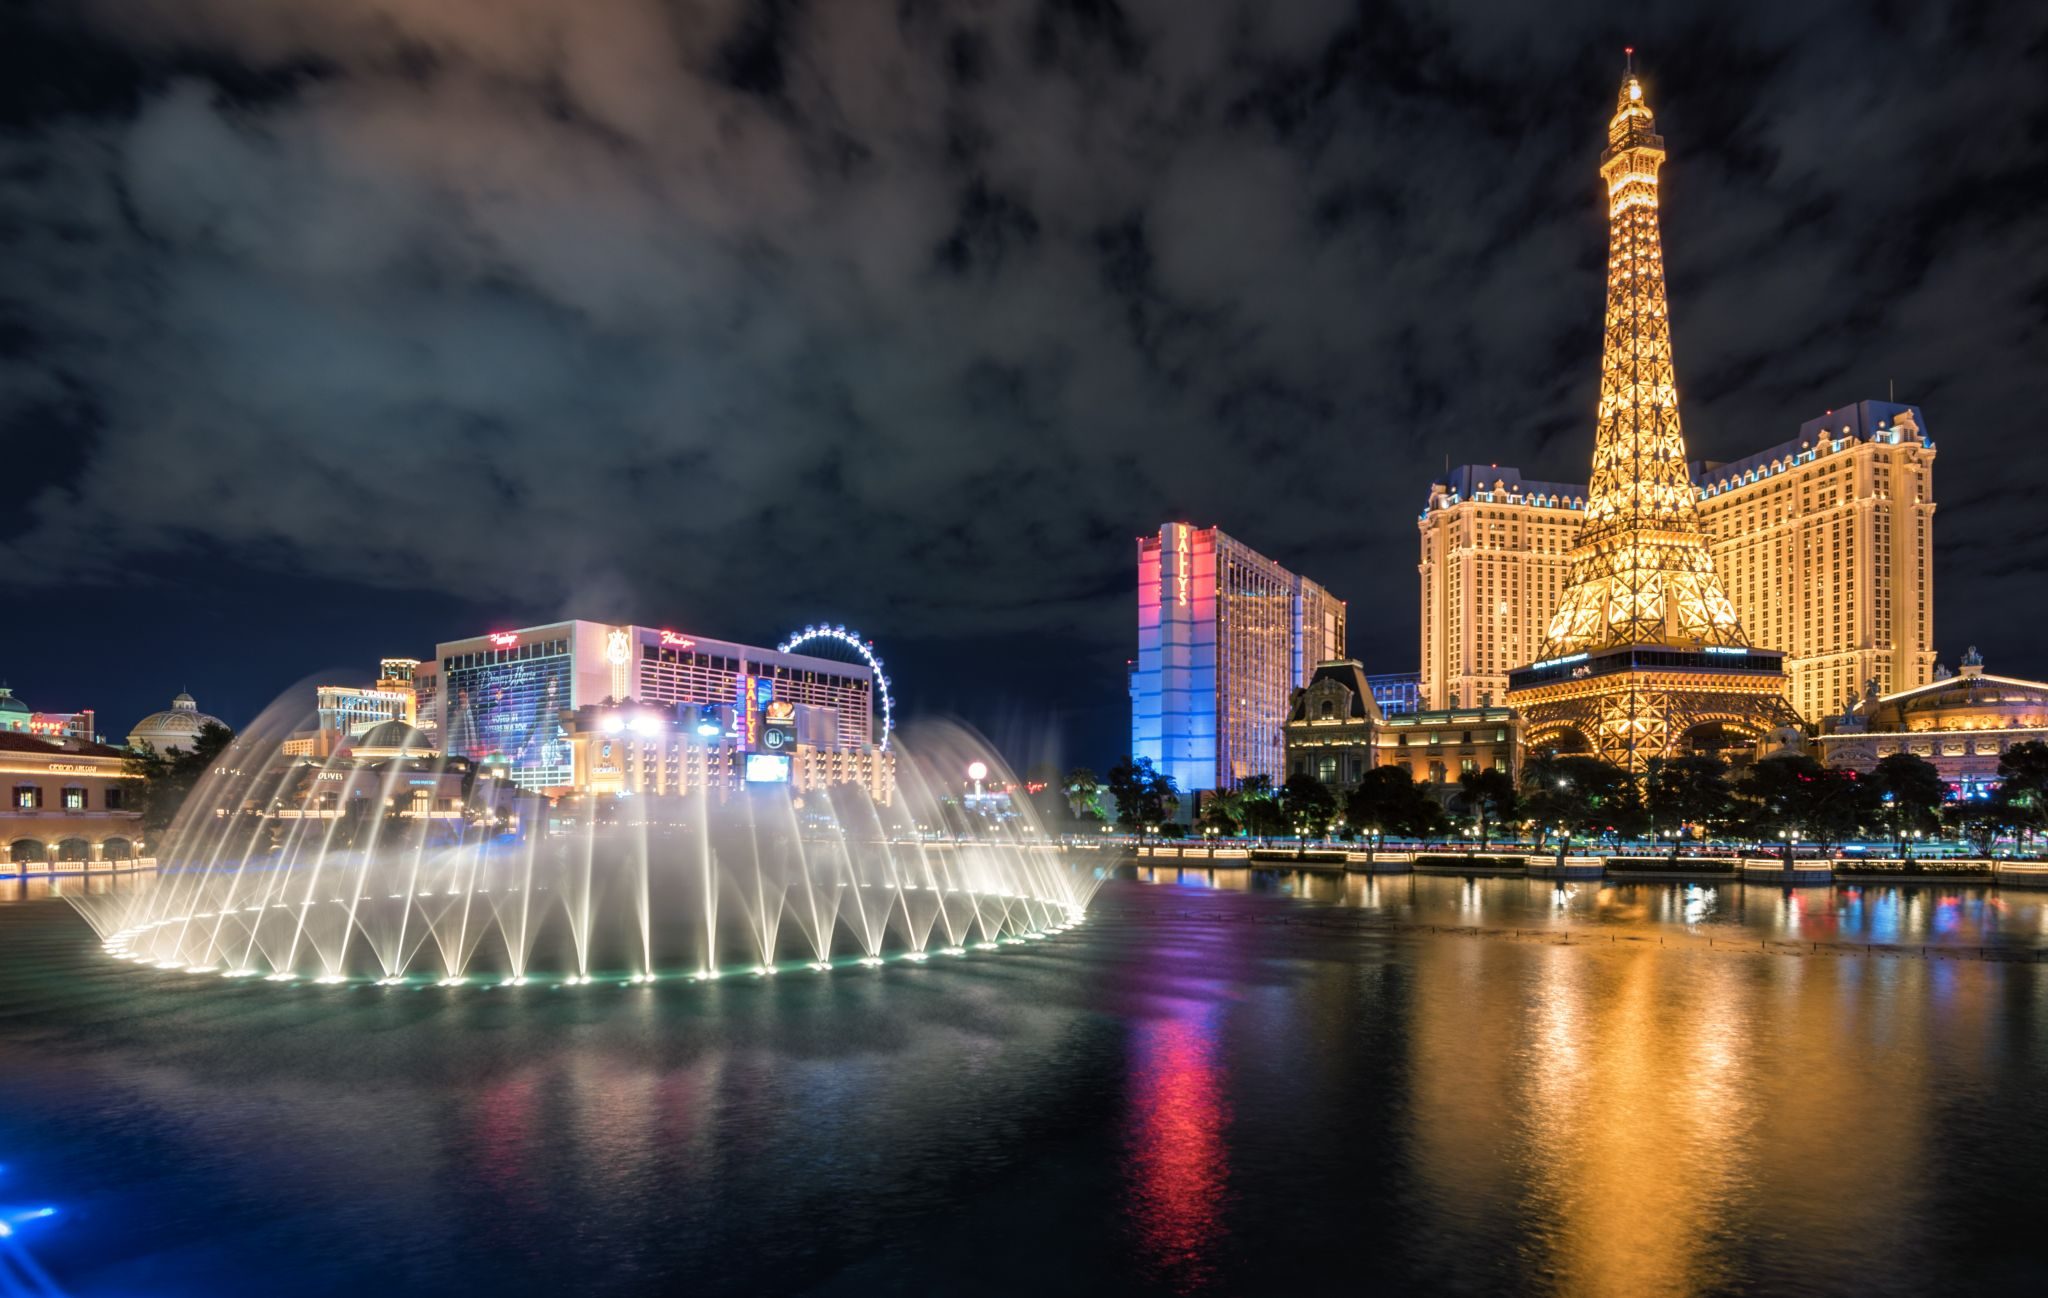 Bellagio Fountain & Paris Las Vegas, USA